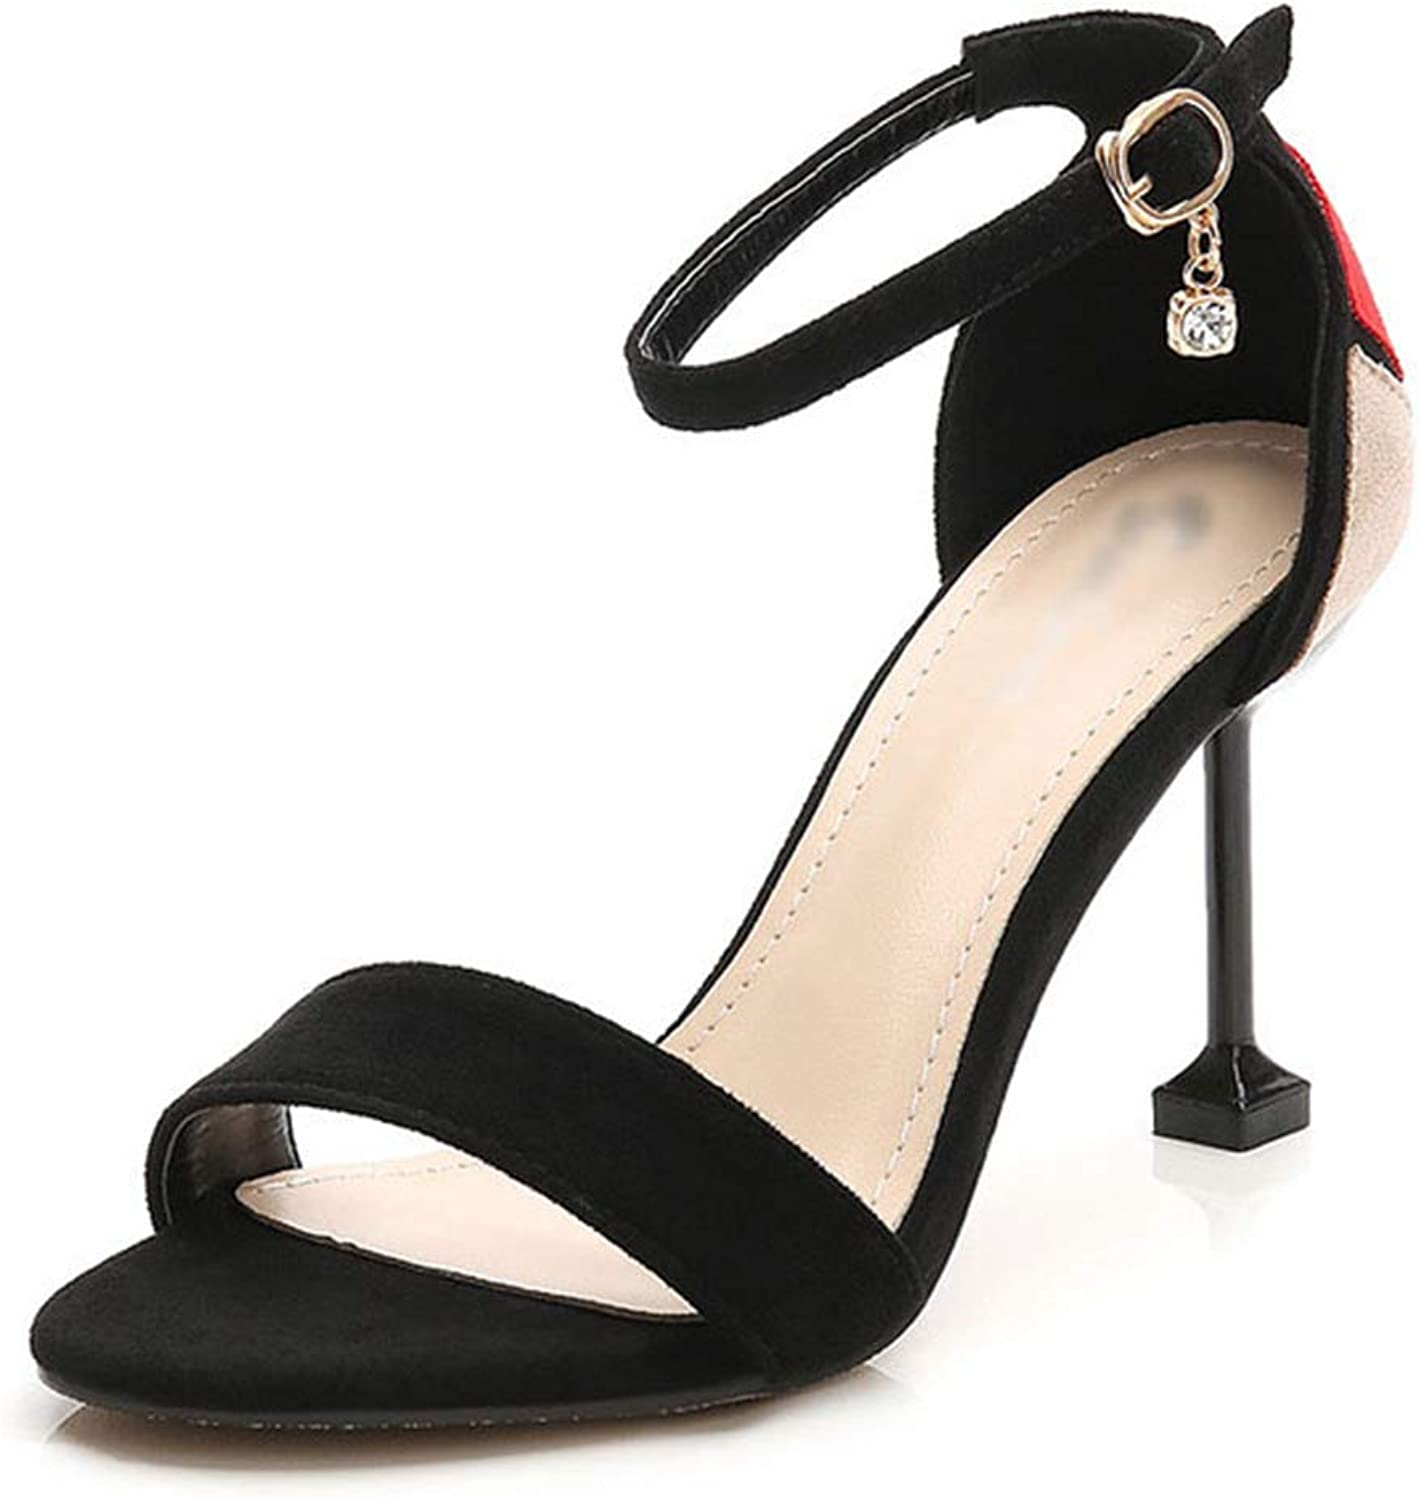 Kyle Walsh Pa Women Sandals Pumps Ankle Strap Open Toe Stiletto Ladies Casual Spring Summer shoes